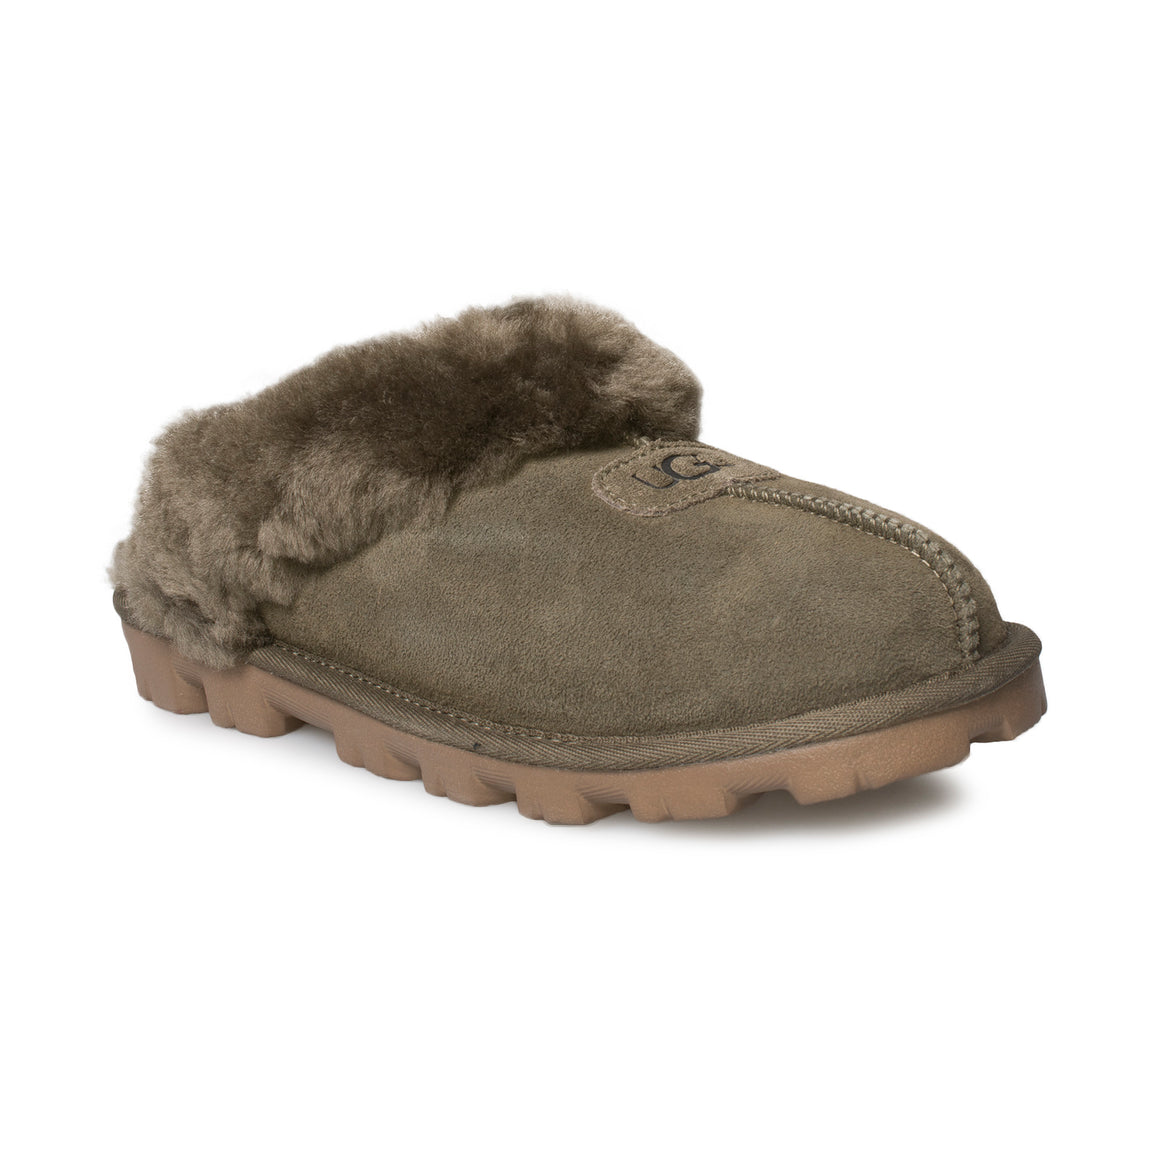 UGG Coquette Eucaliptus Spray Slippers - Women's